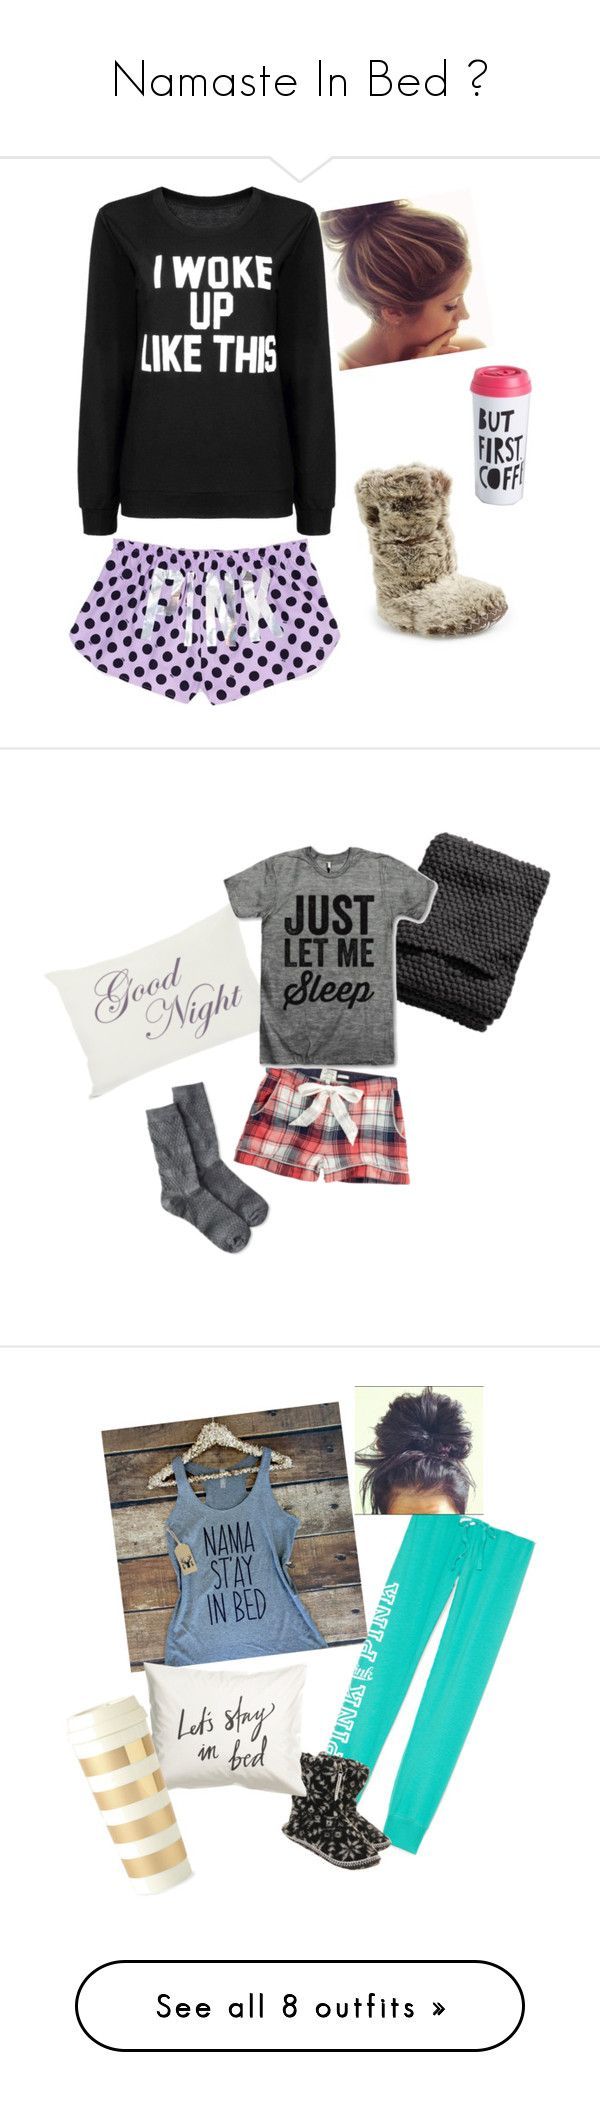 """""""Namaste In Bed 👌"""" by jenann36 ❤ liked on Polyvore featuring Victoria's Secret PINK, Bedroom Athletics, Fat Face, H&M, Kate Spade, Victoria's Secret, Old Navy, Jack Wills, NIKE and Accessorize"""